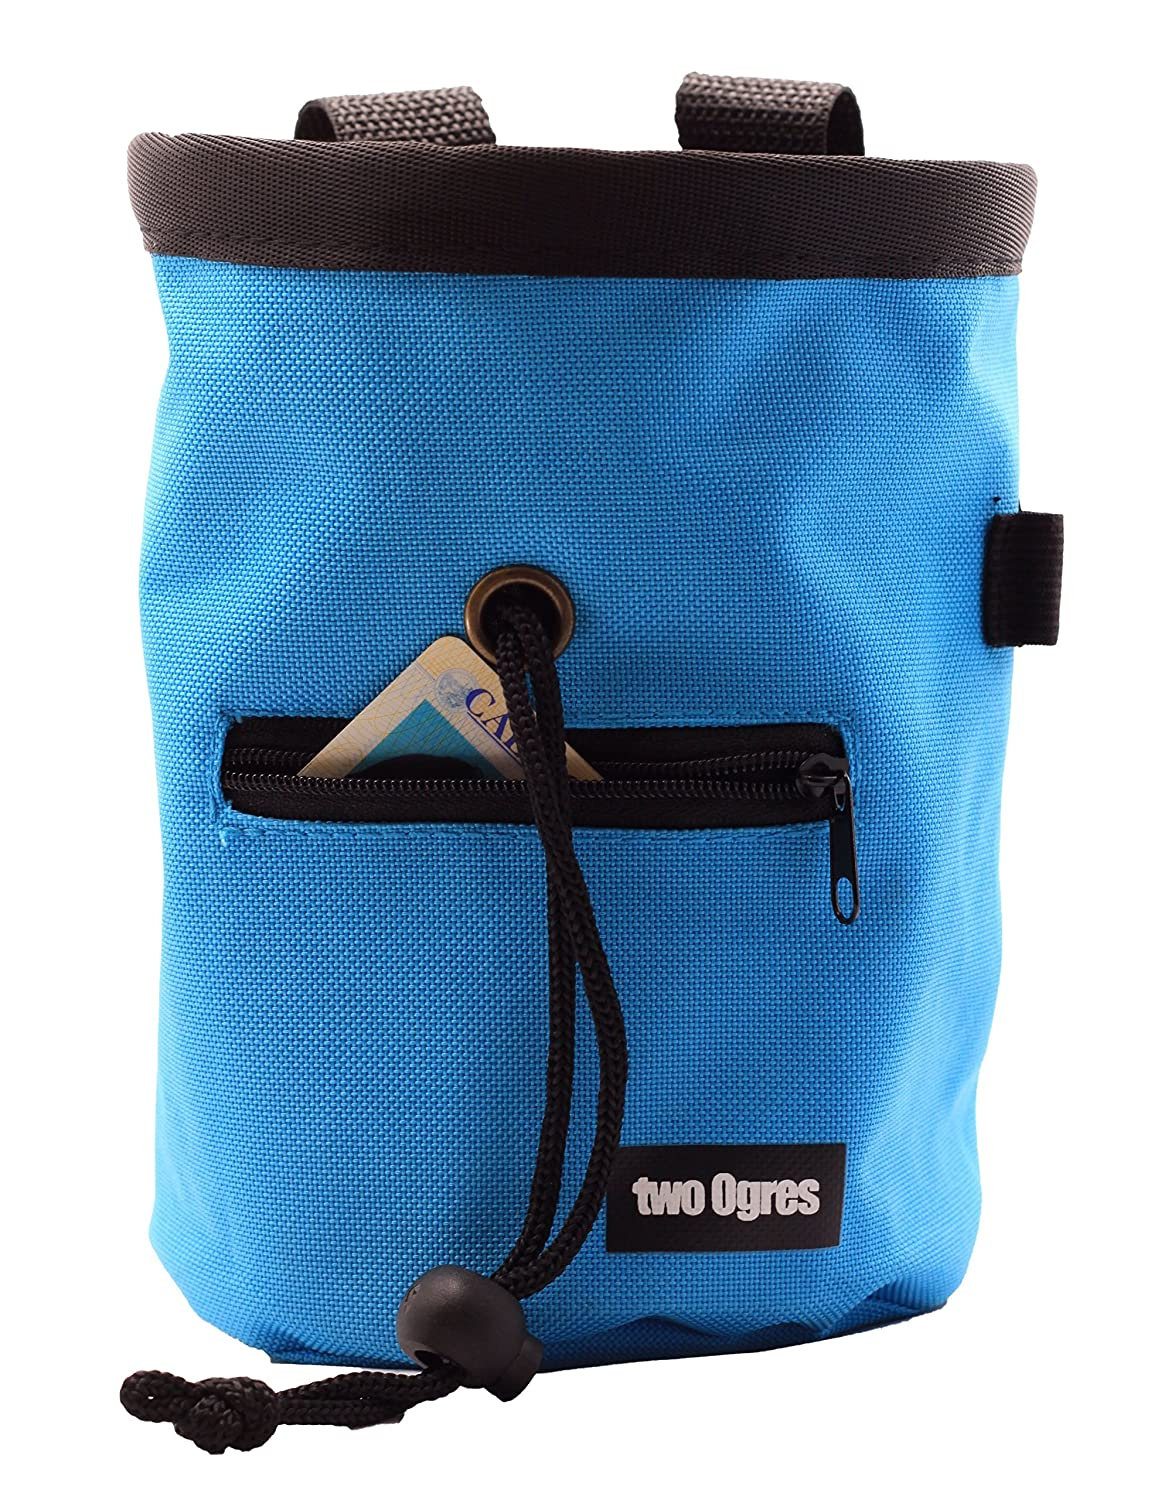 Weight Lifting two Ogres Essential-Z Climbing Chalk Bag with Belt and Zippered Pocket for Climbing Gymnastics